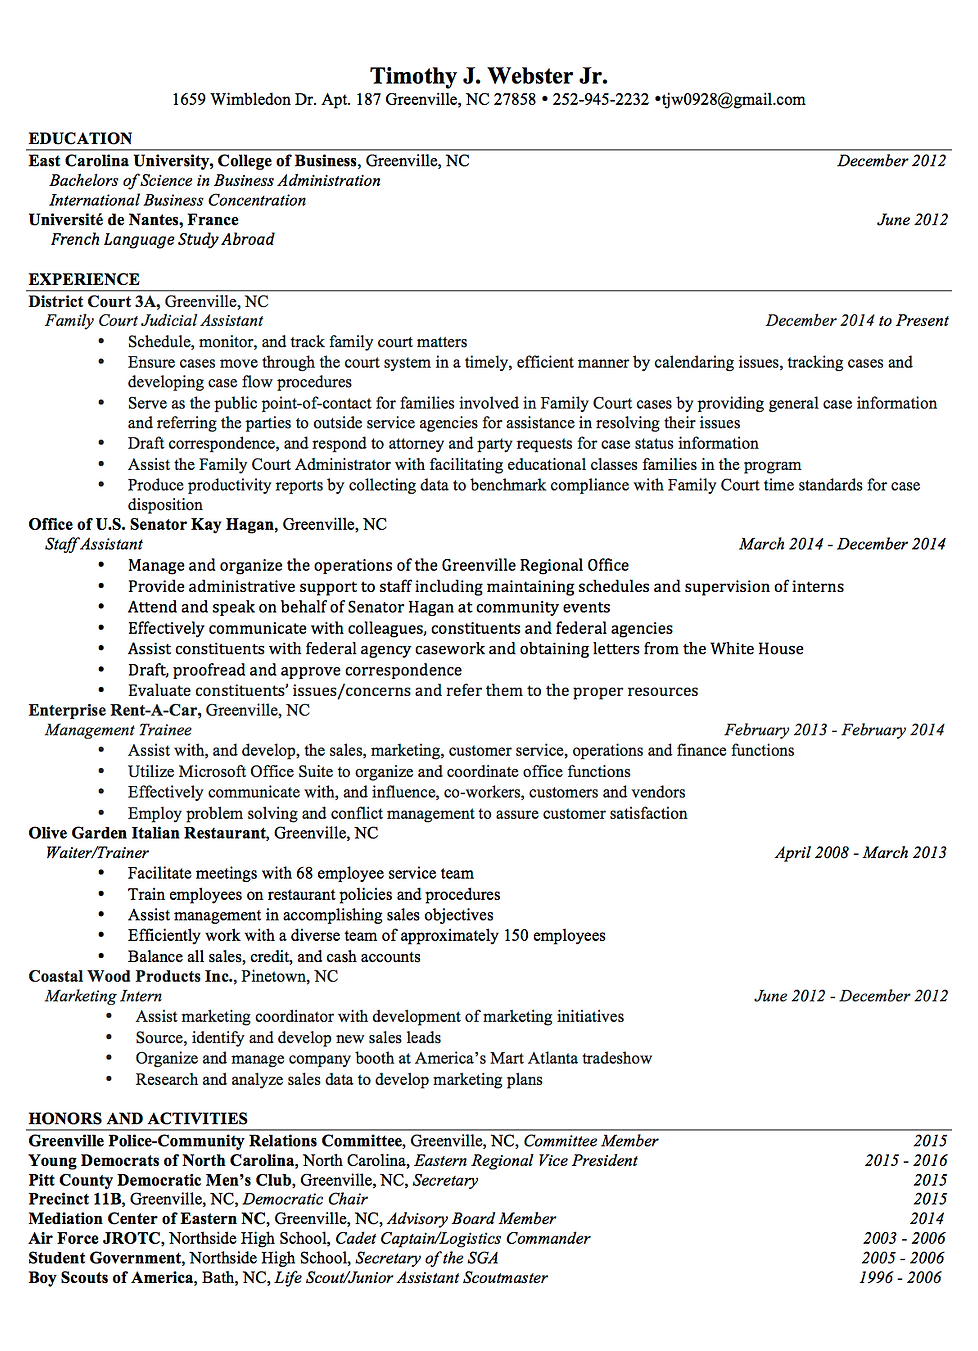 timothy webster resume